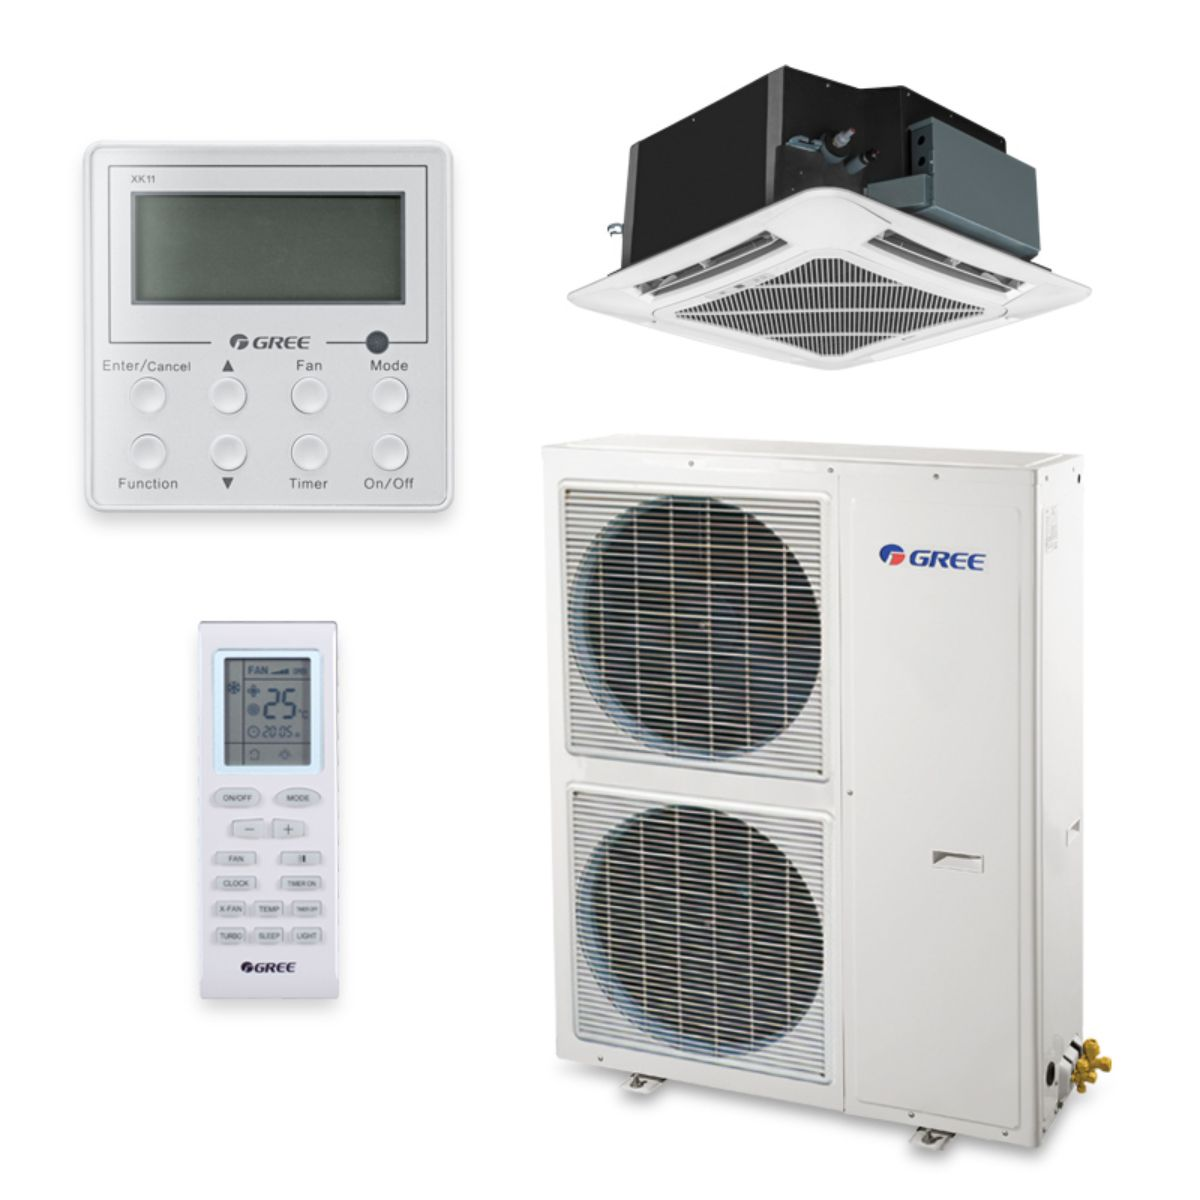 Gree UMAT42HP230V1AC-S - 42,000 BTU 16 SEER Ceiling Cassette Ductless Mini Split Air Conditioner Heat Pump 208-230V